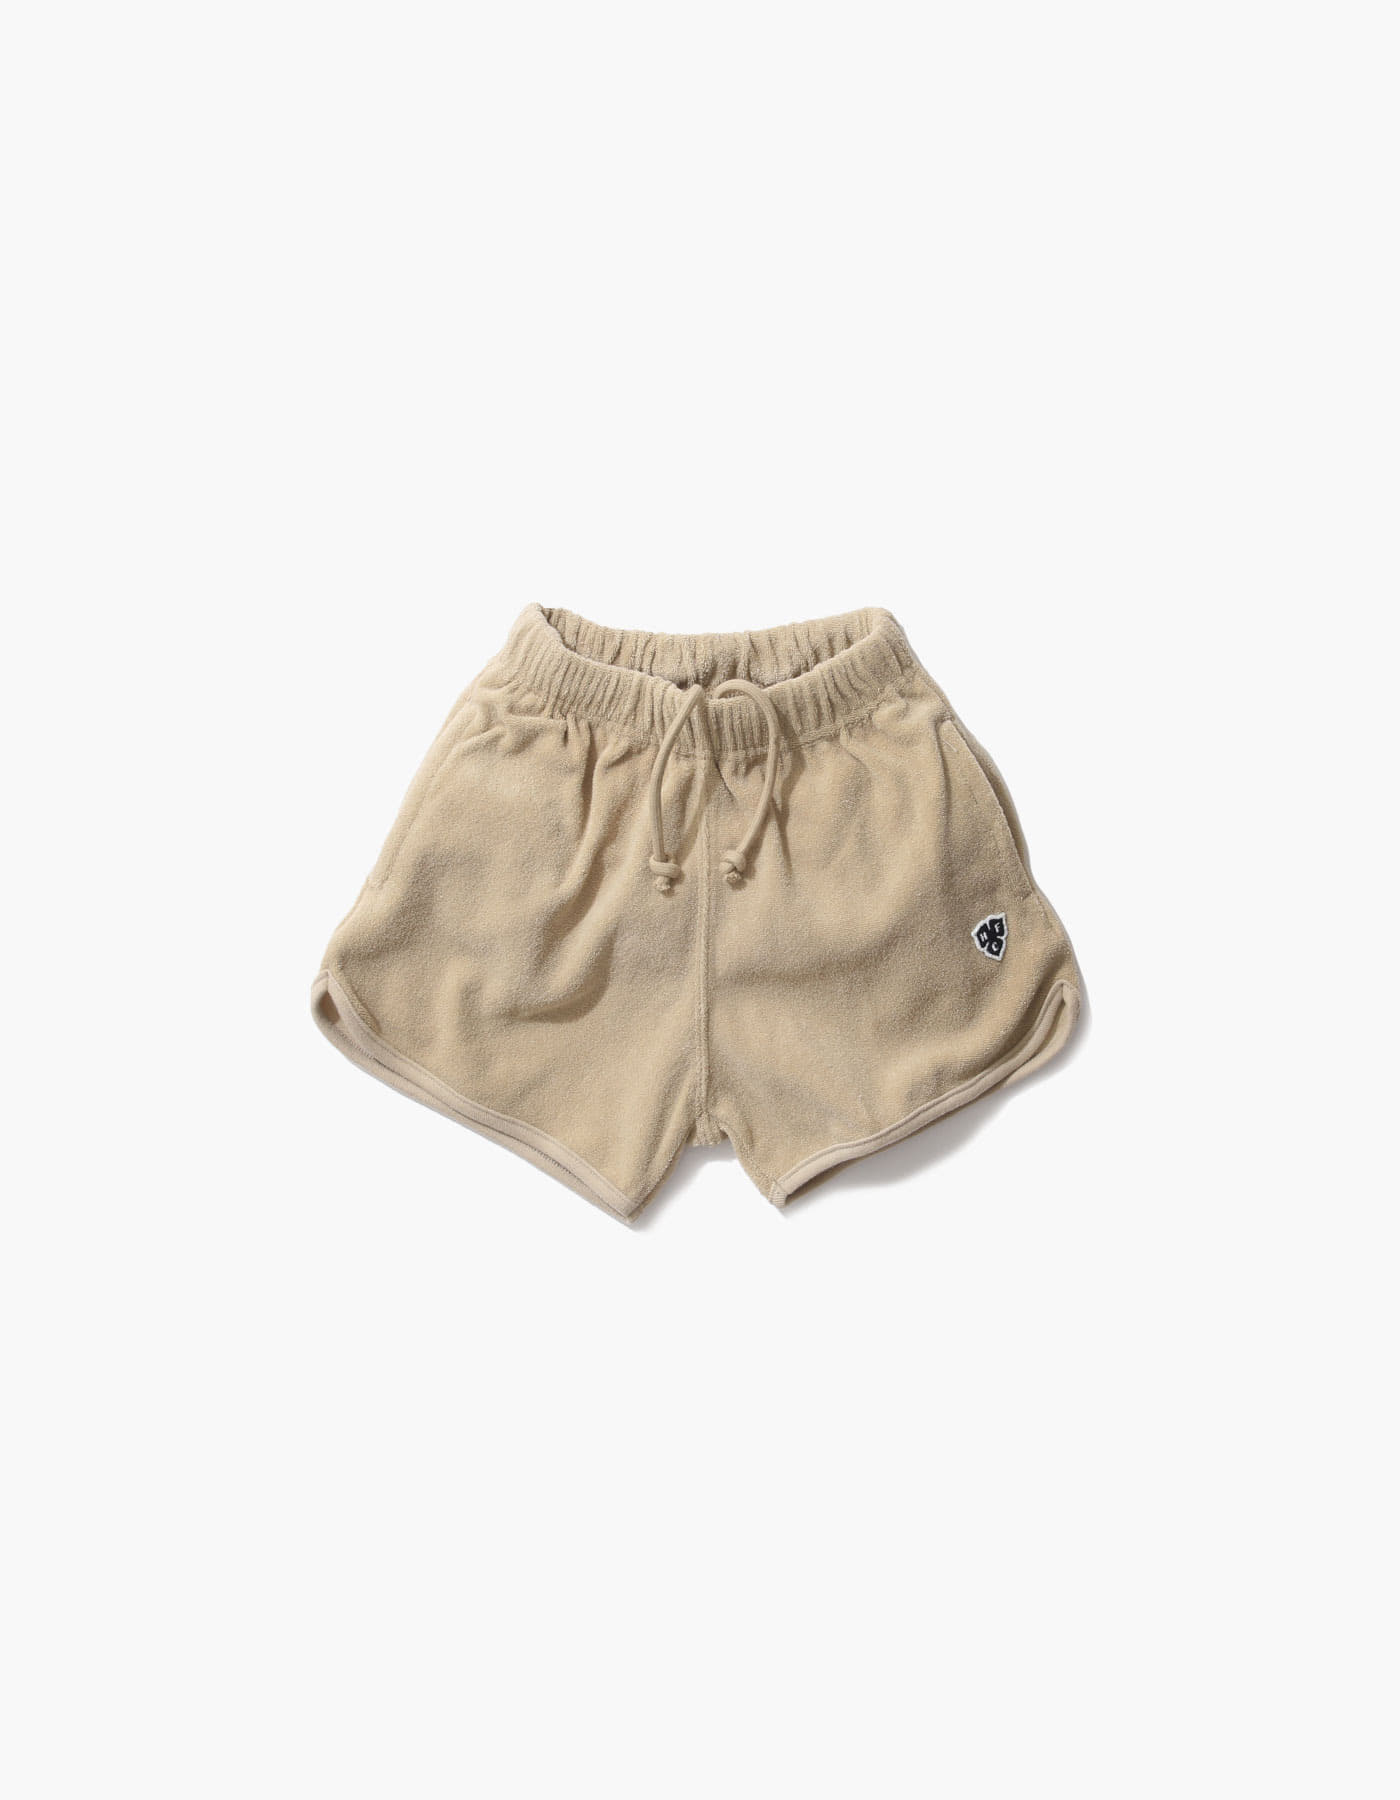 HFC CREST KIDS TOWEL SHORTS / BEIGE